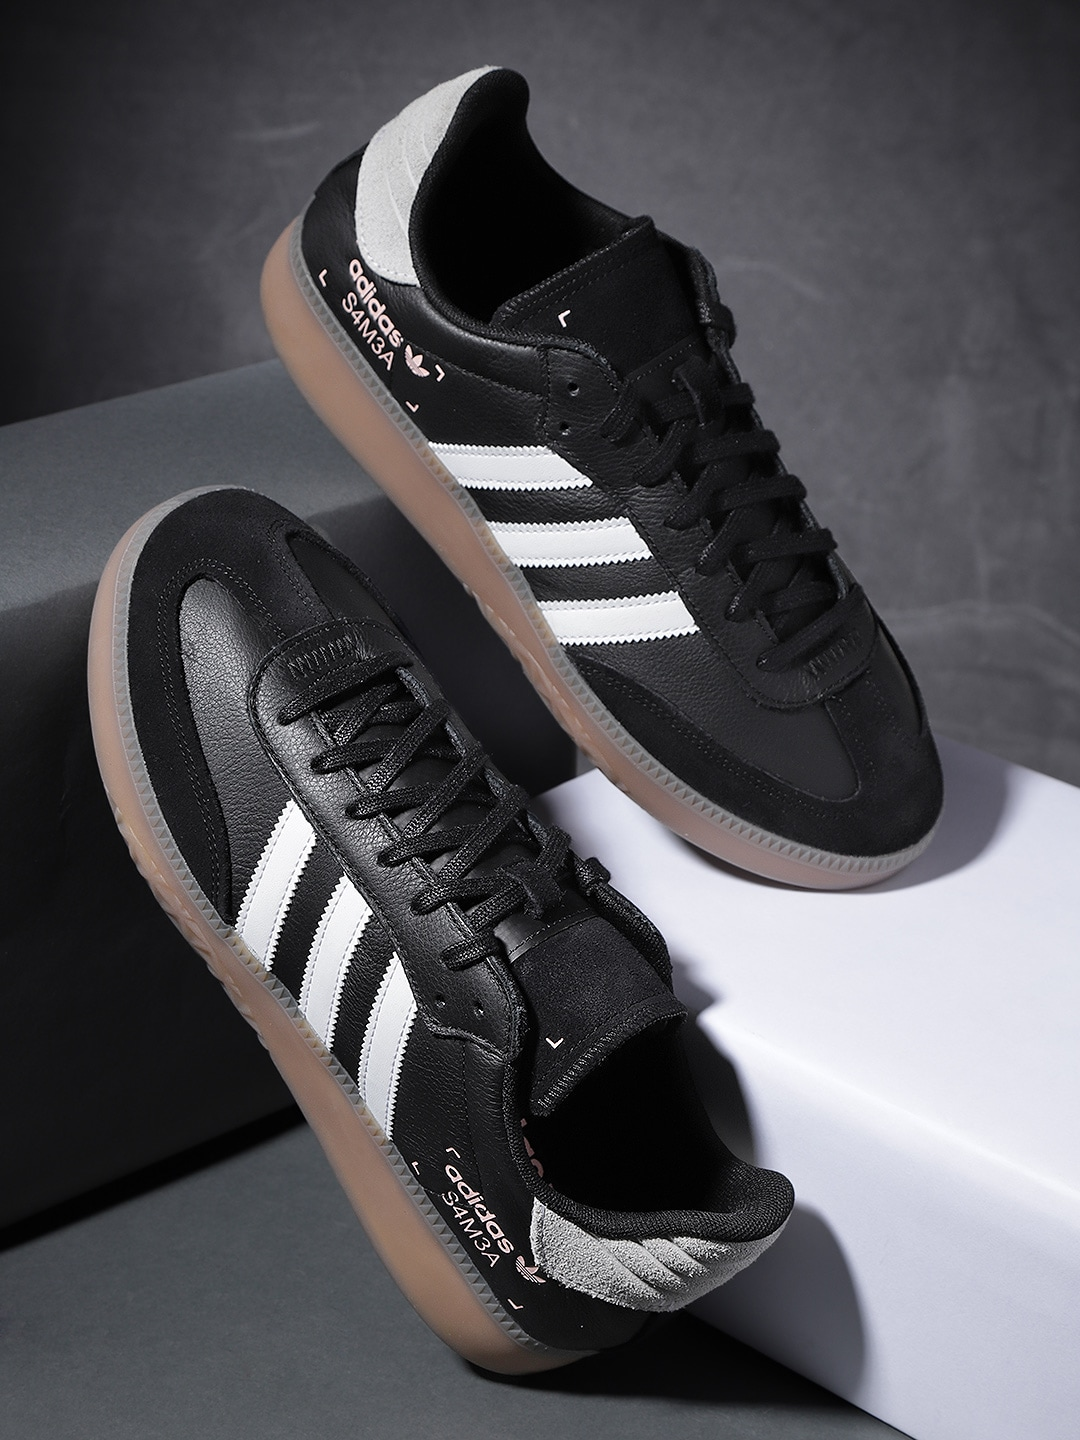 a8cb5a5218e537 Adidas Casual - Buy Adidas Casual online in India